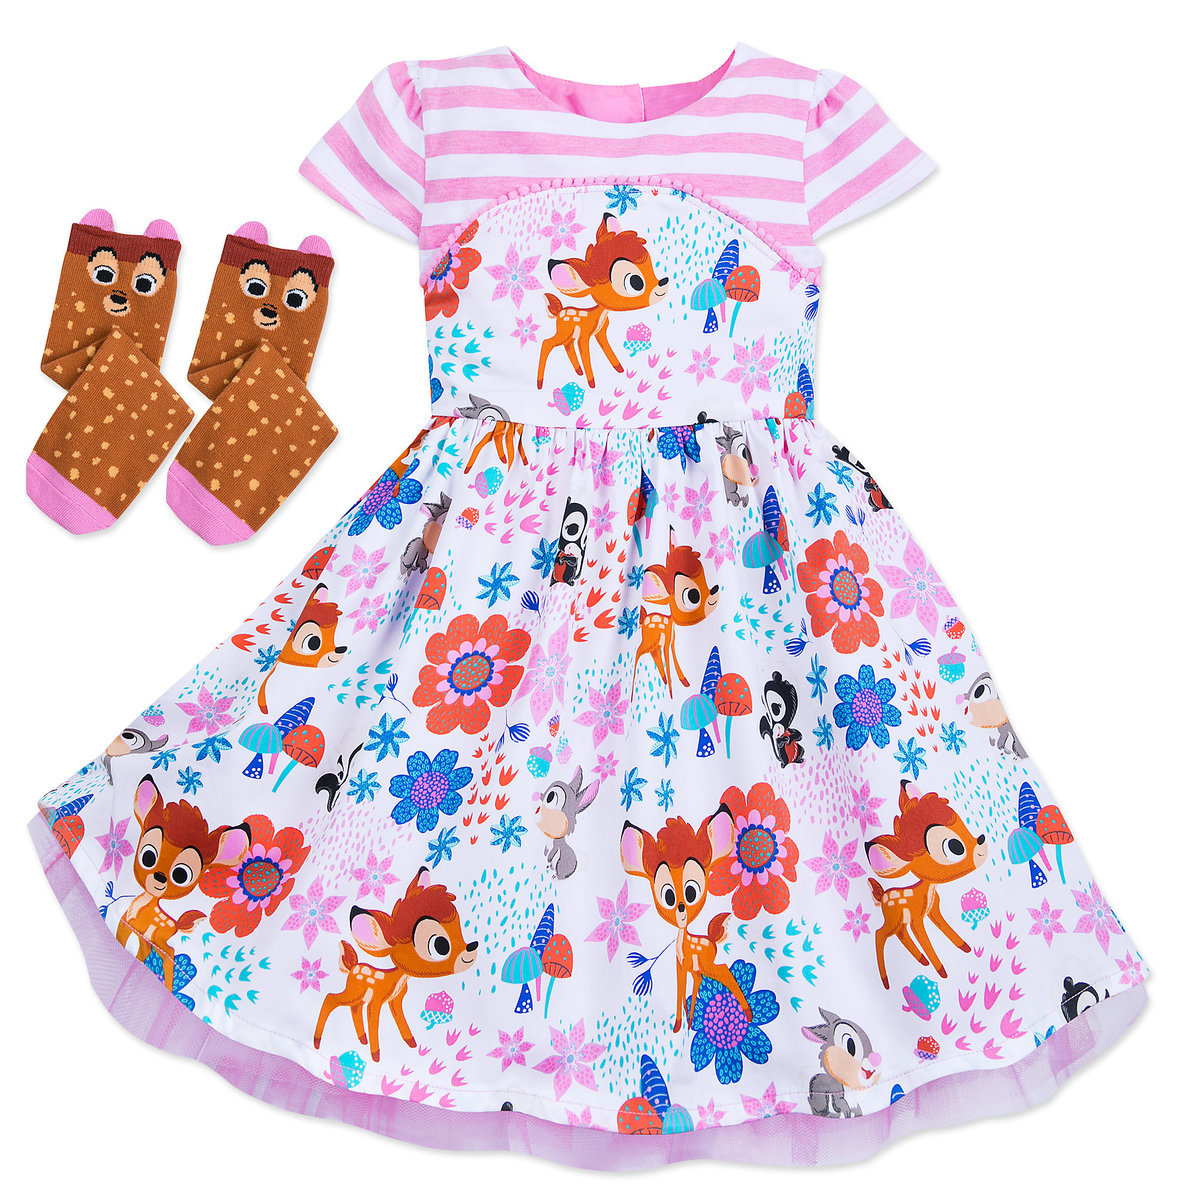 1429a2a761a87 Product Image of Bambi Dress and Socks Set for Girls - Disney Furrytale  friends # 1